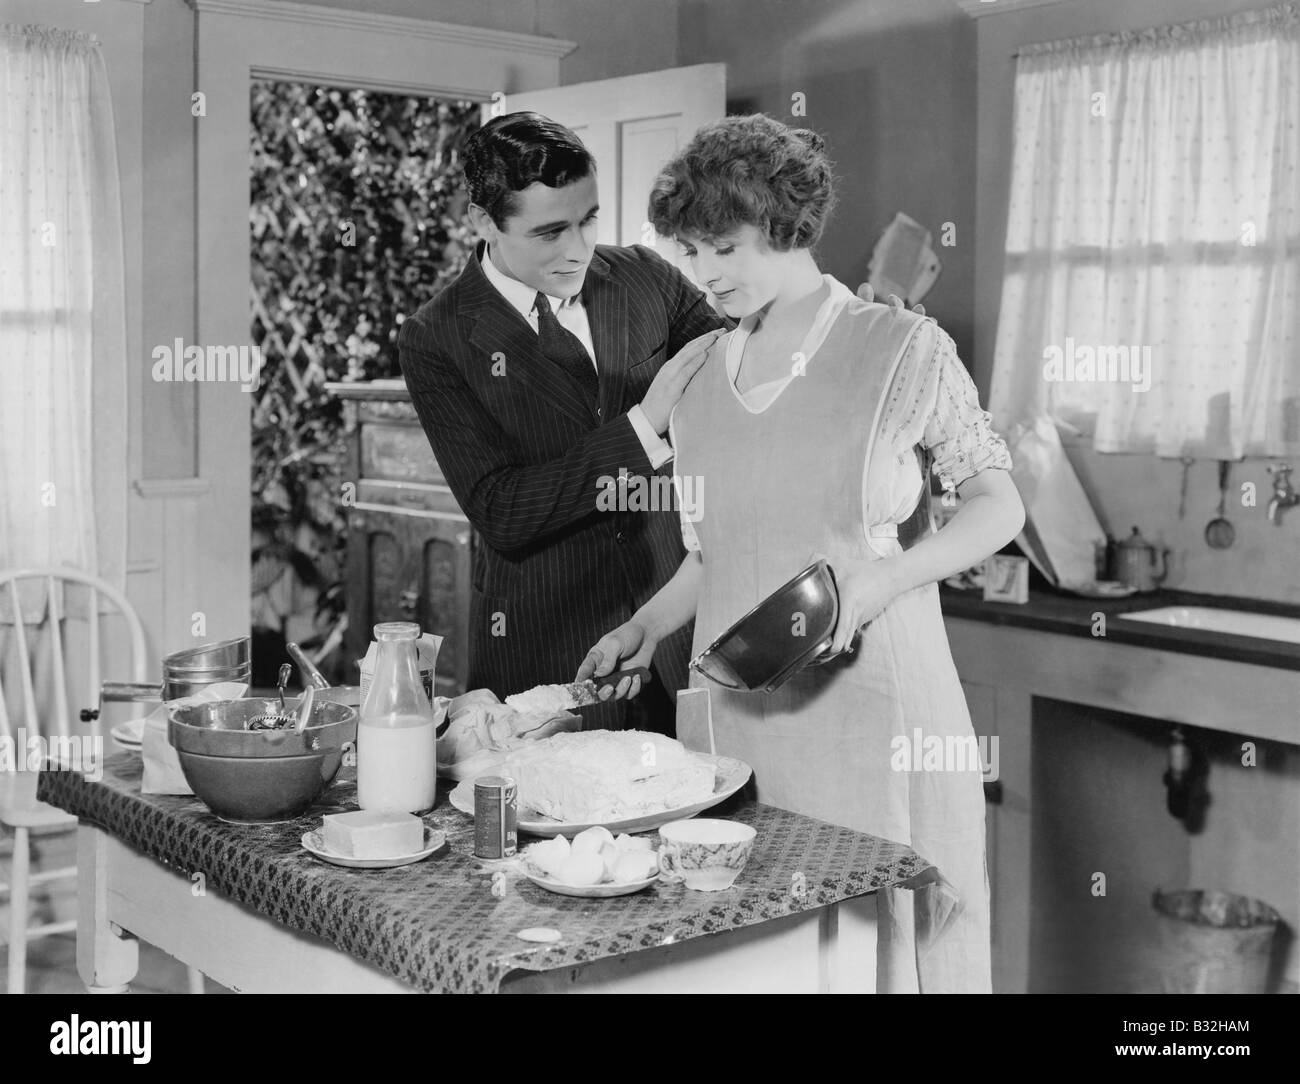 HELP IN THE KITCHEN - Stock Image